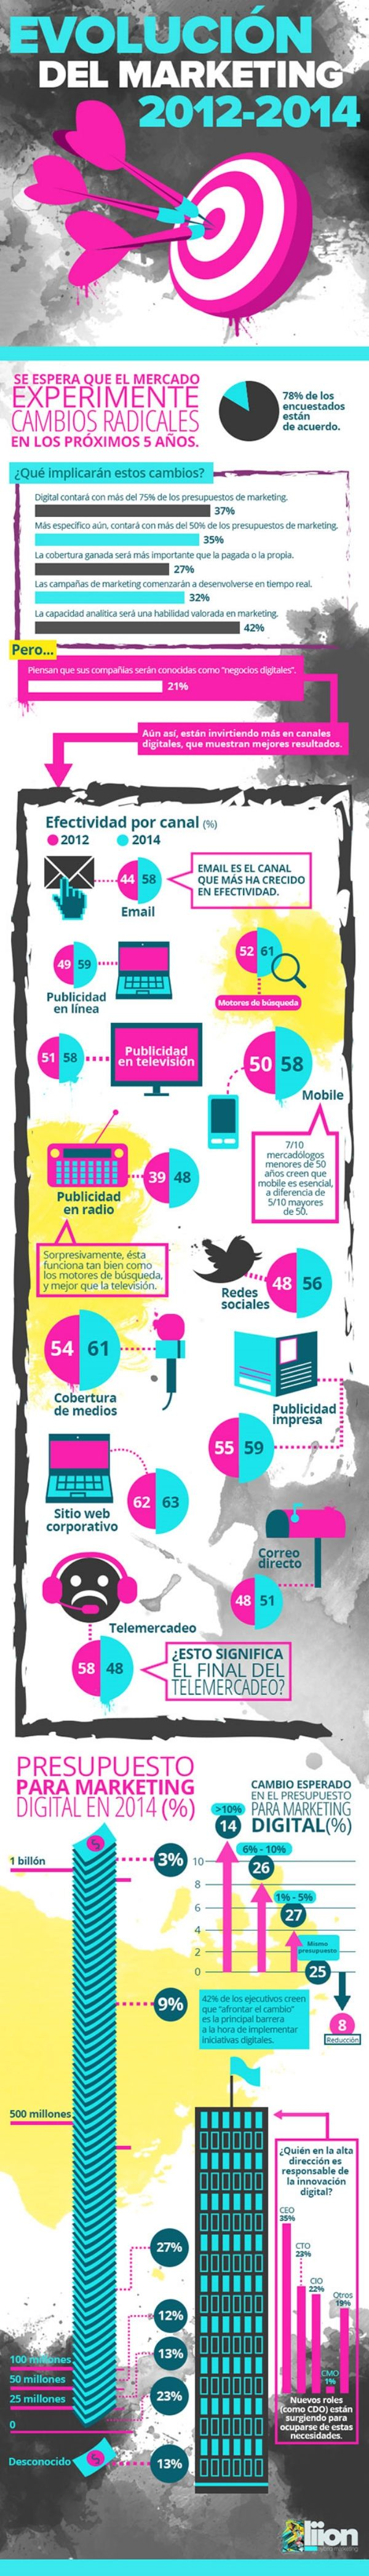 la-evolucion-del-marketing-2012-2014-83-411-994516-edited